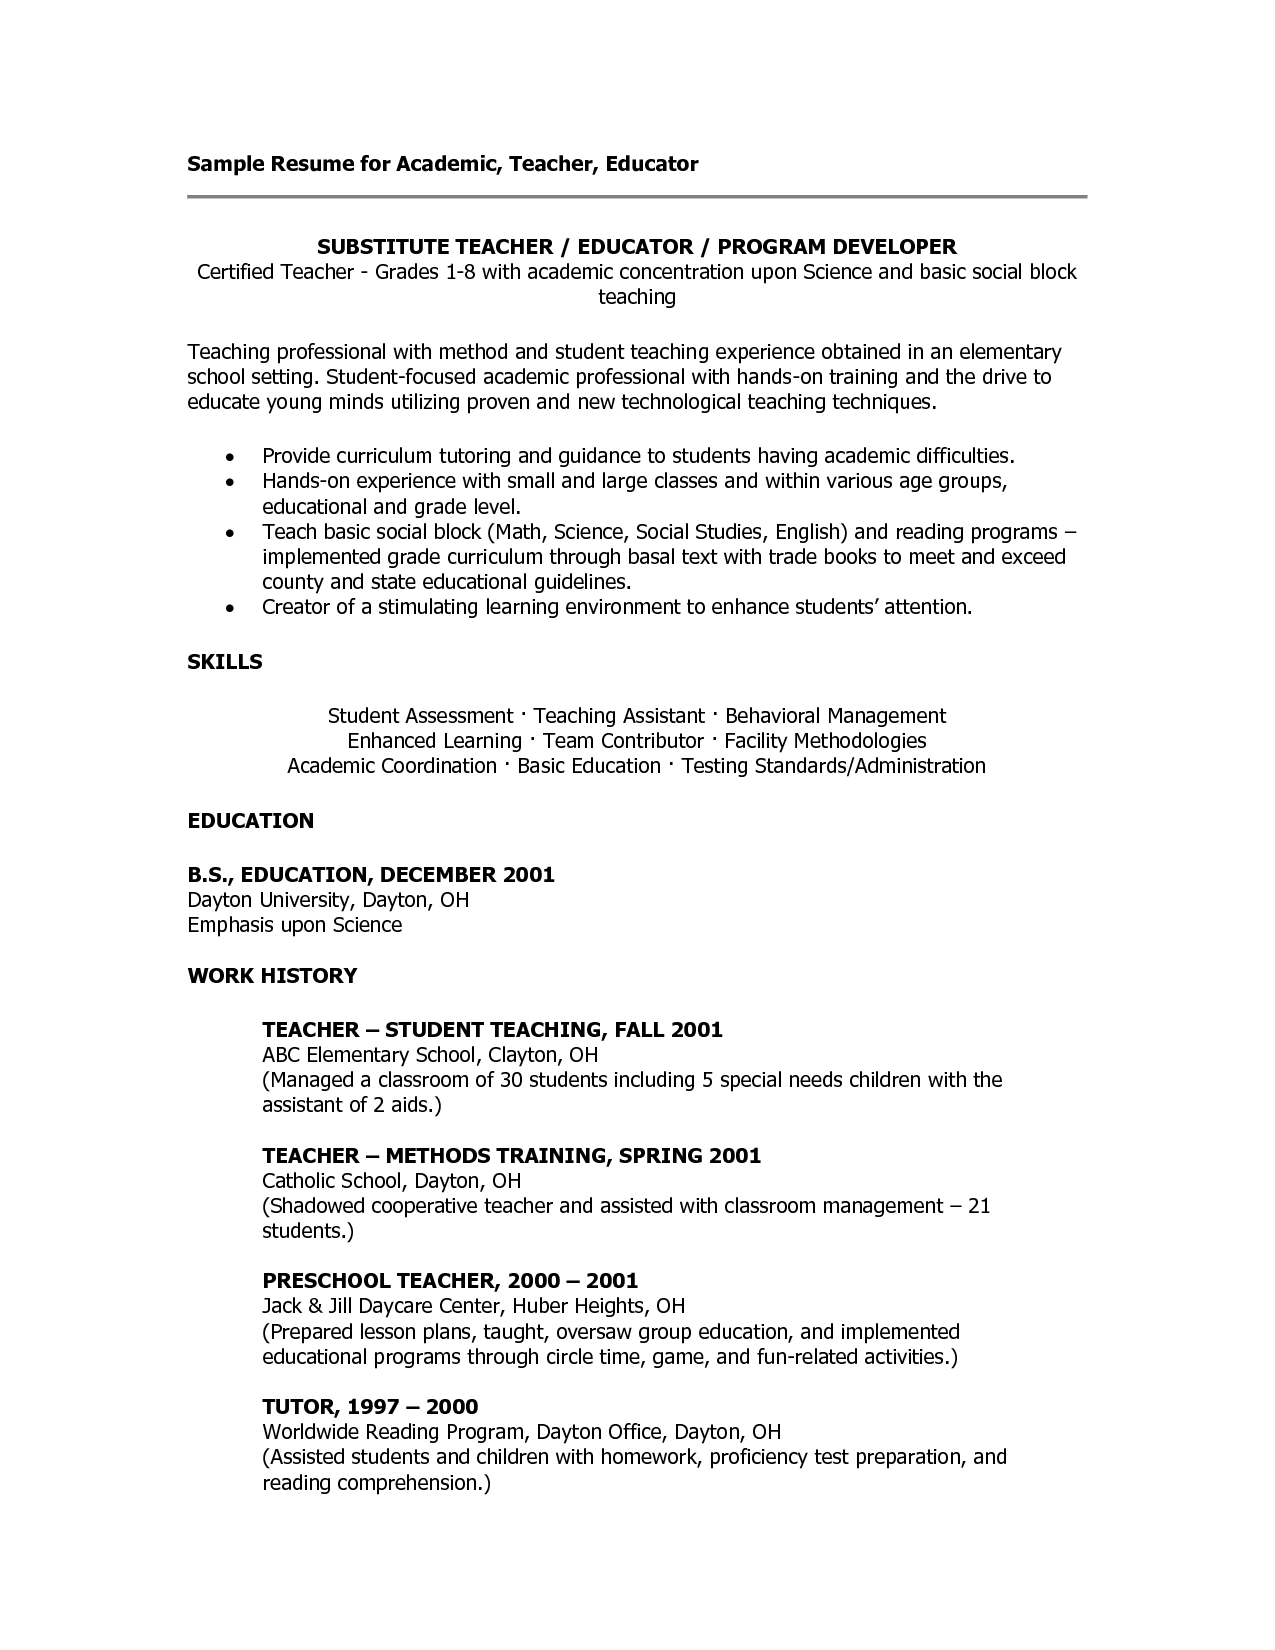 art teacher cv doc mittnastaliv tk art teacher cv 25 04 2017